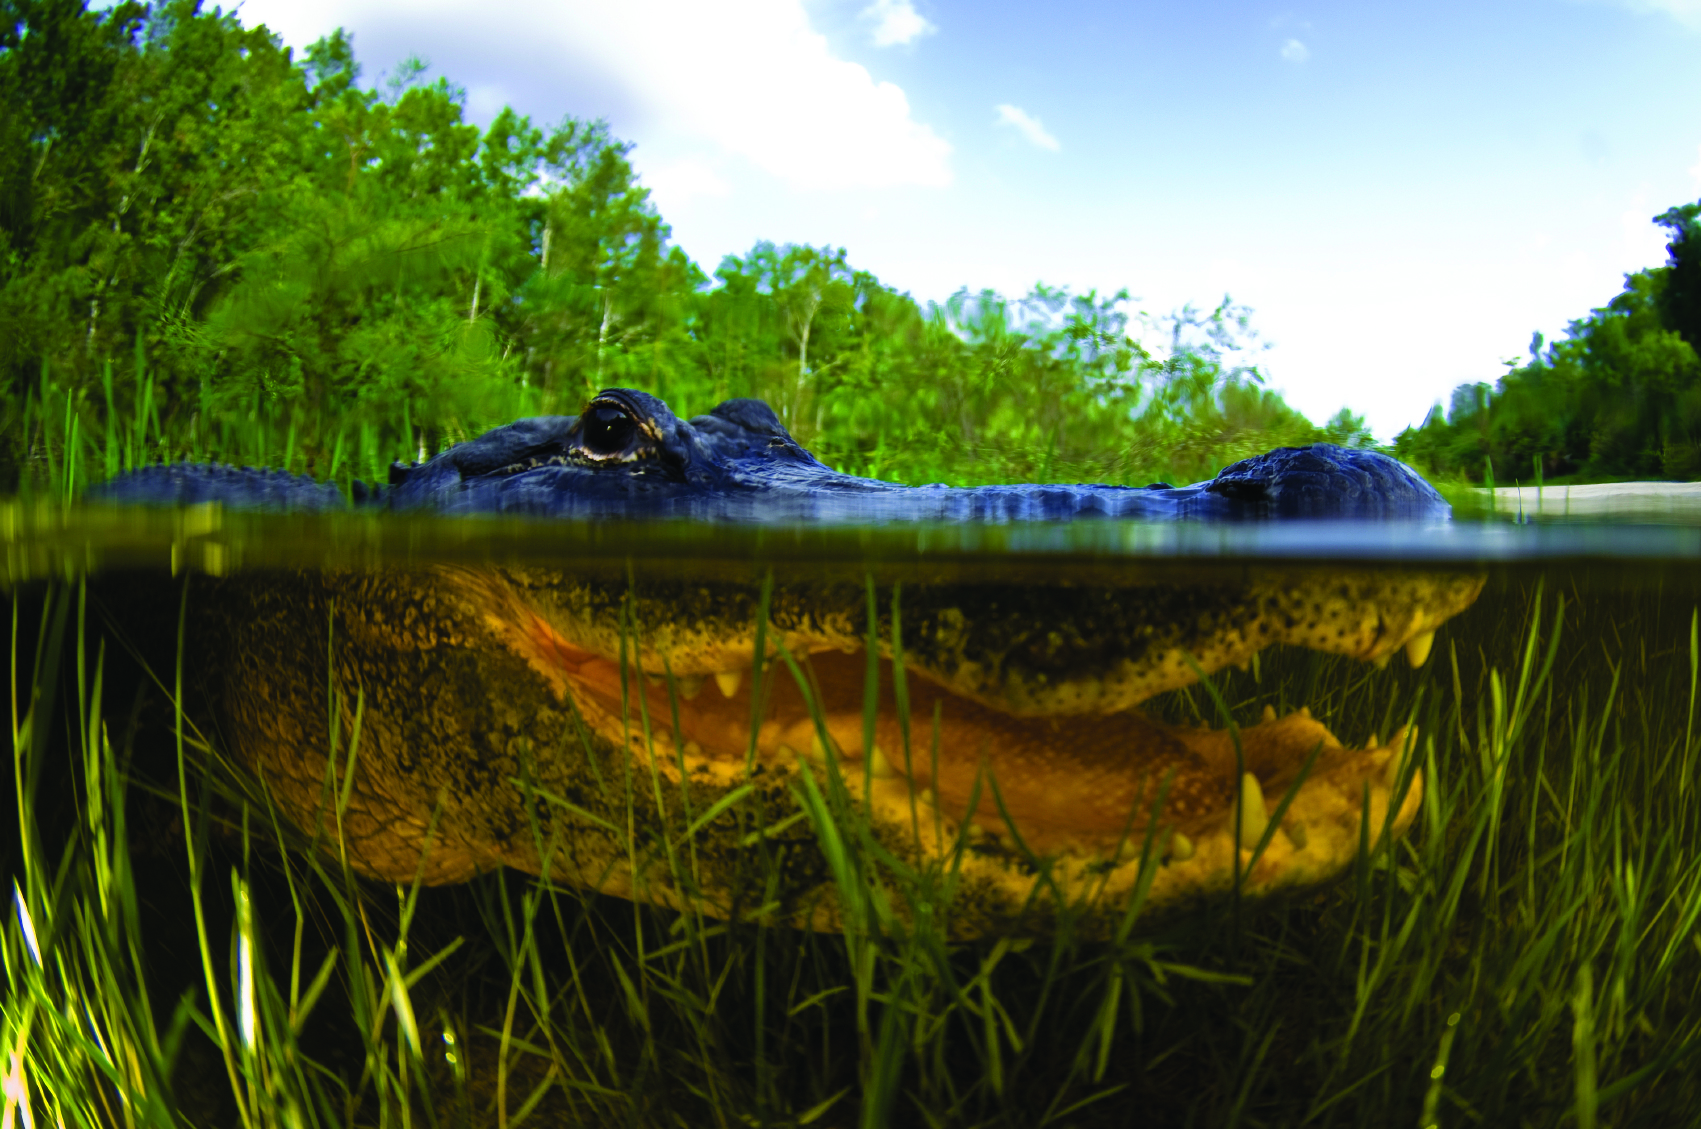 American Alligator in the Florida Everglades